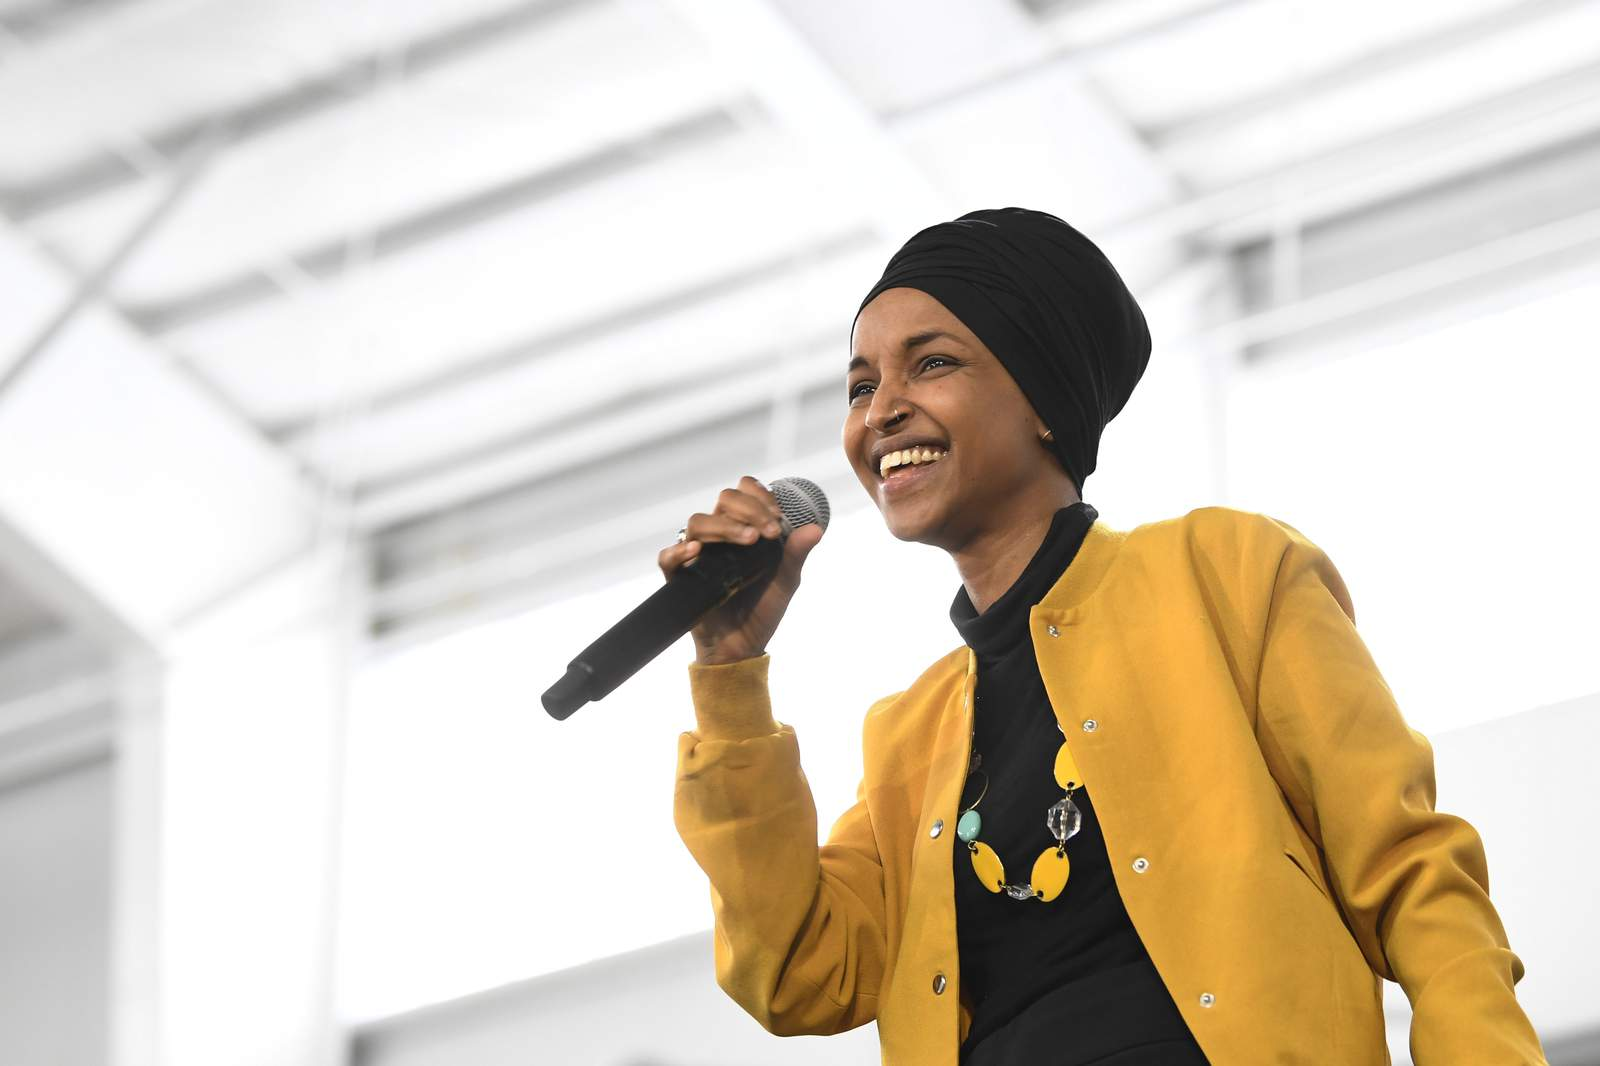 Ilhan Omar announces new marriage, months after affair claim